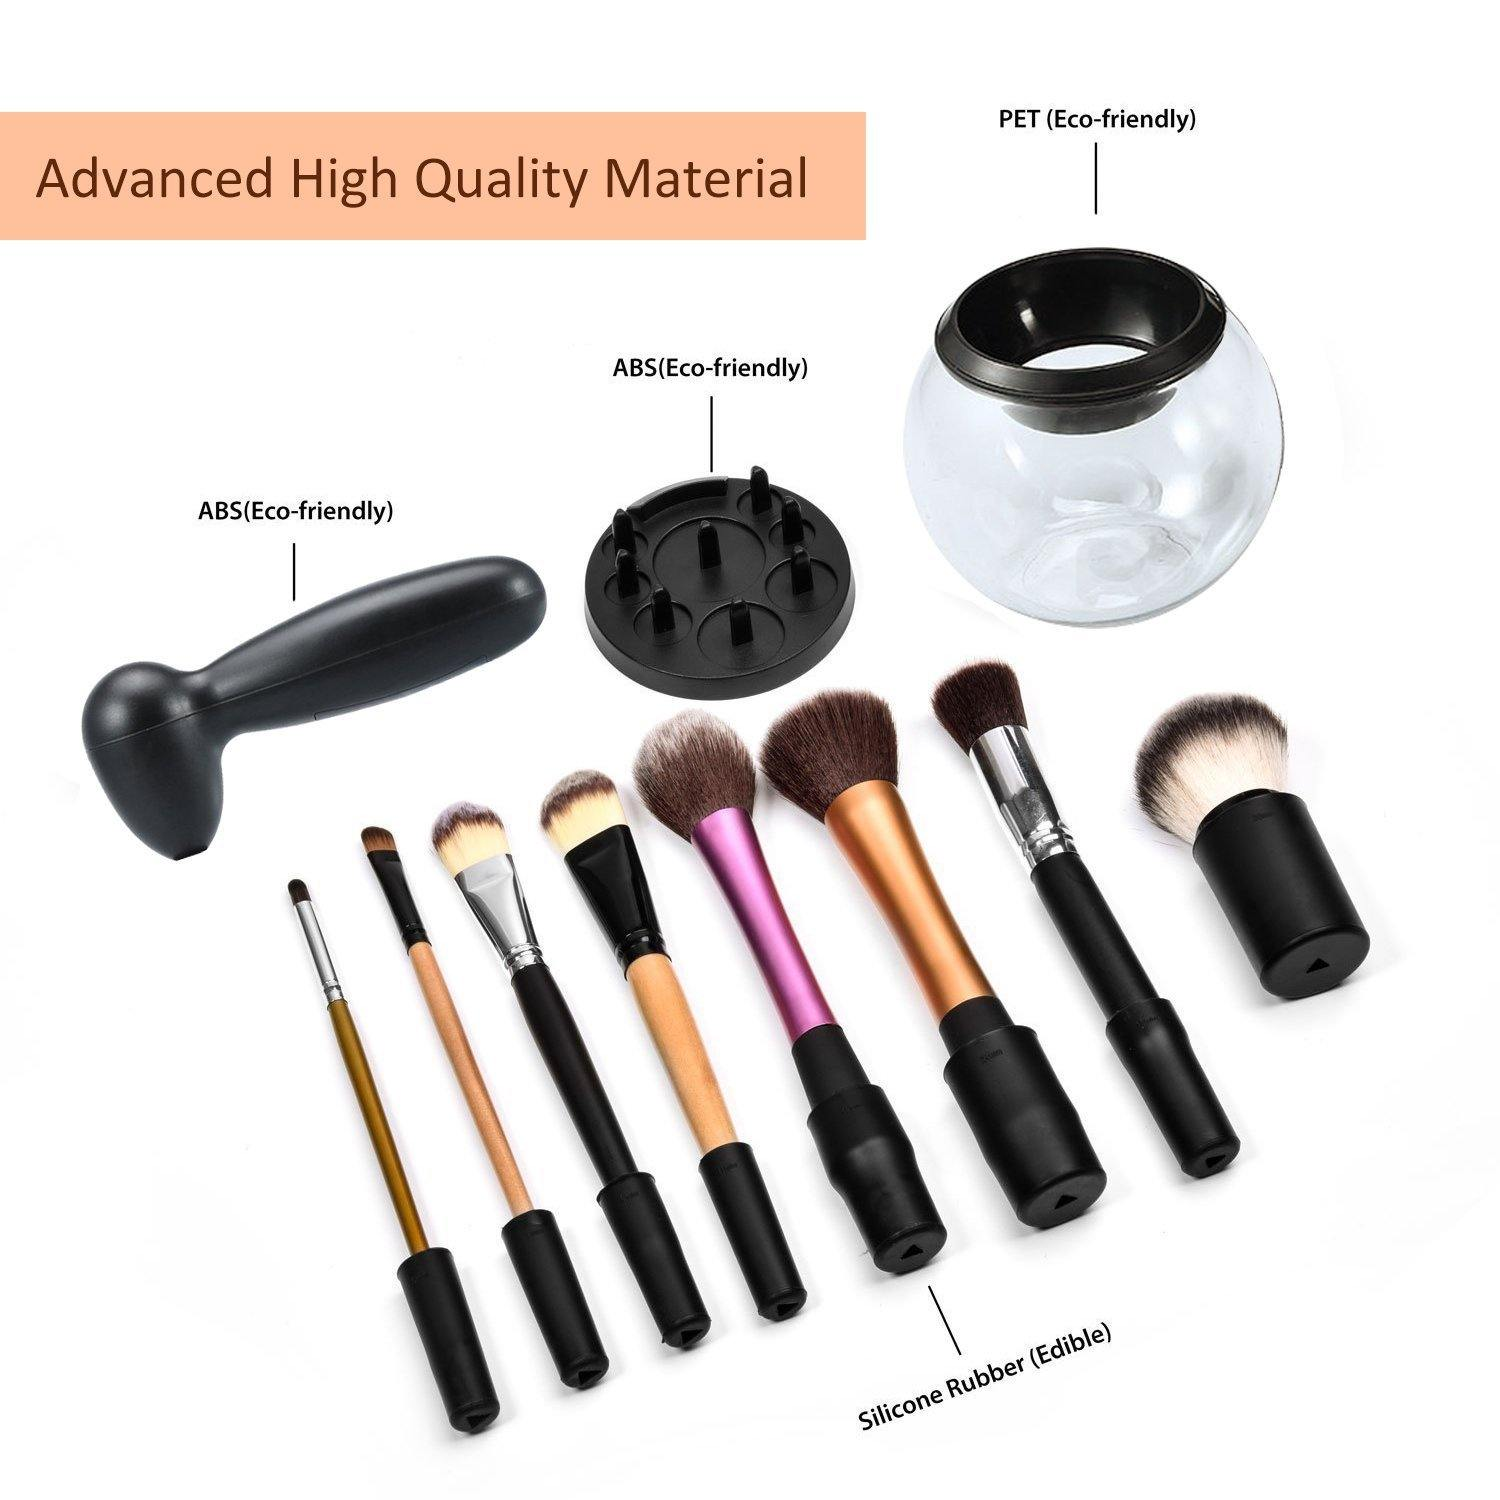 Automatic Makeup Brush Cleaner & Dryer